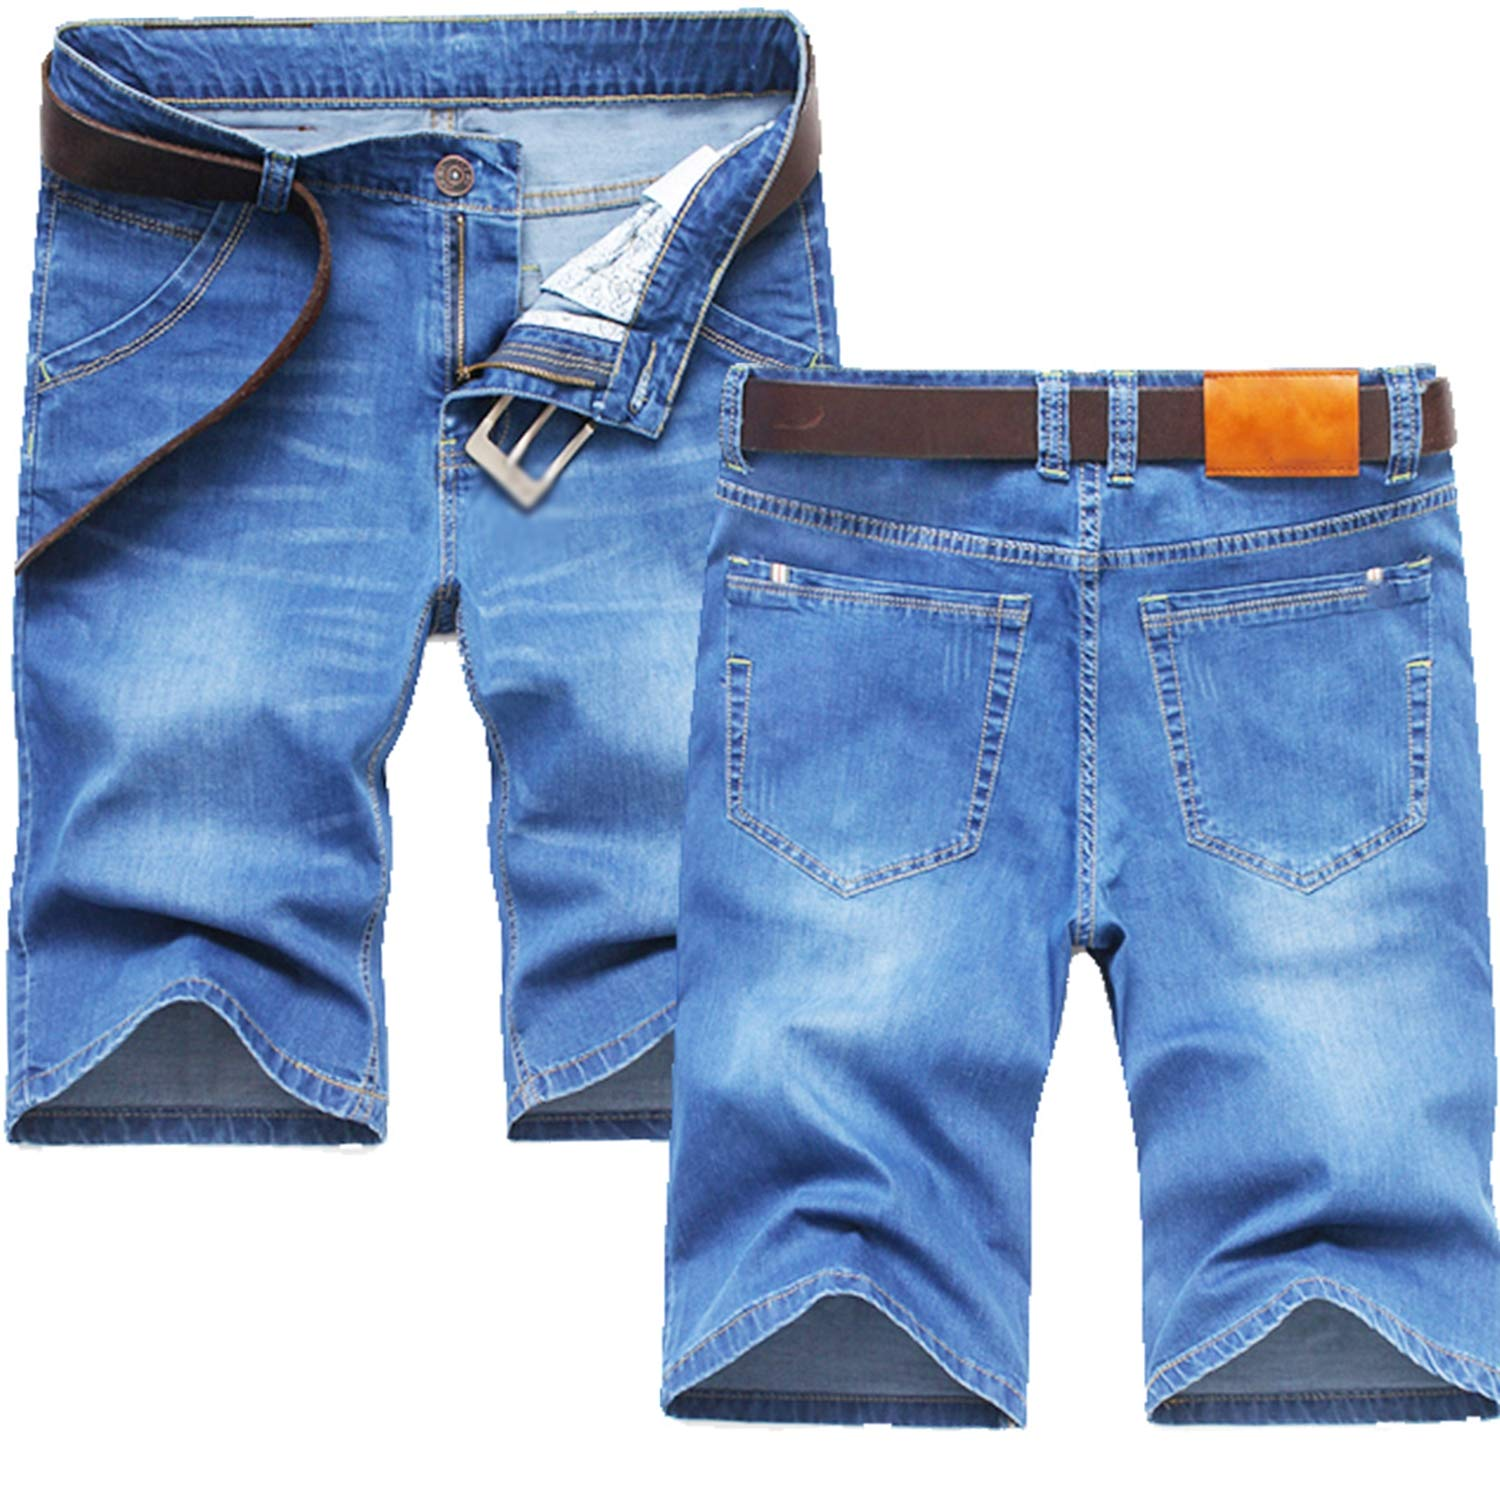 Men Casual Short Jeans Slim Knee Length Casual Business Shorts Jeans Stretch Cotton Fabric No Belt Jeans